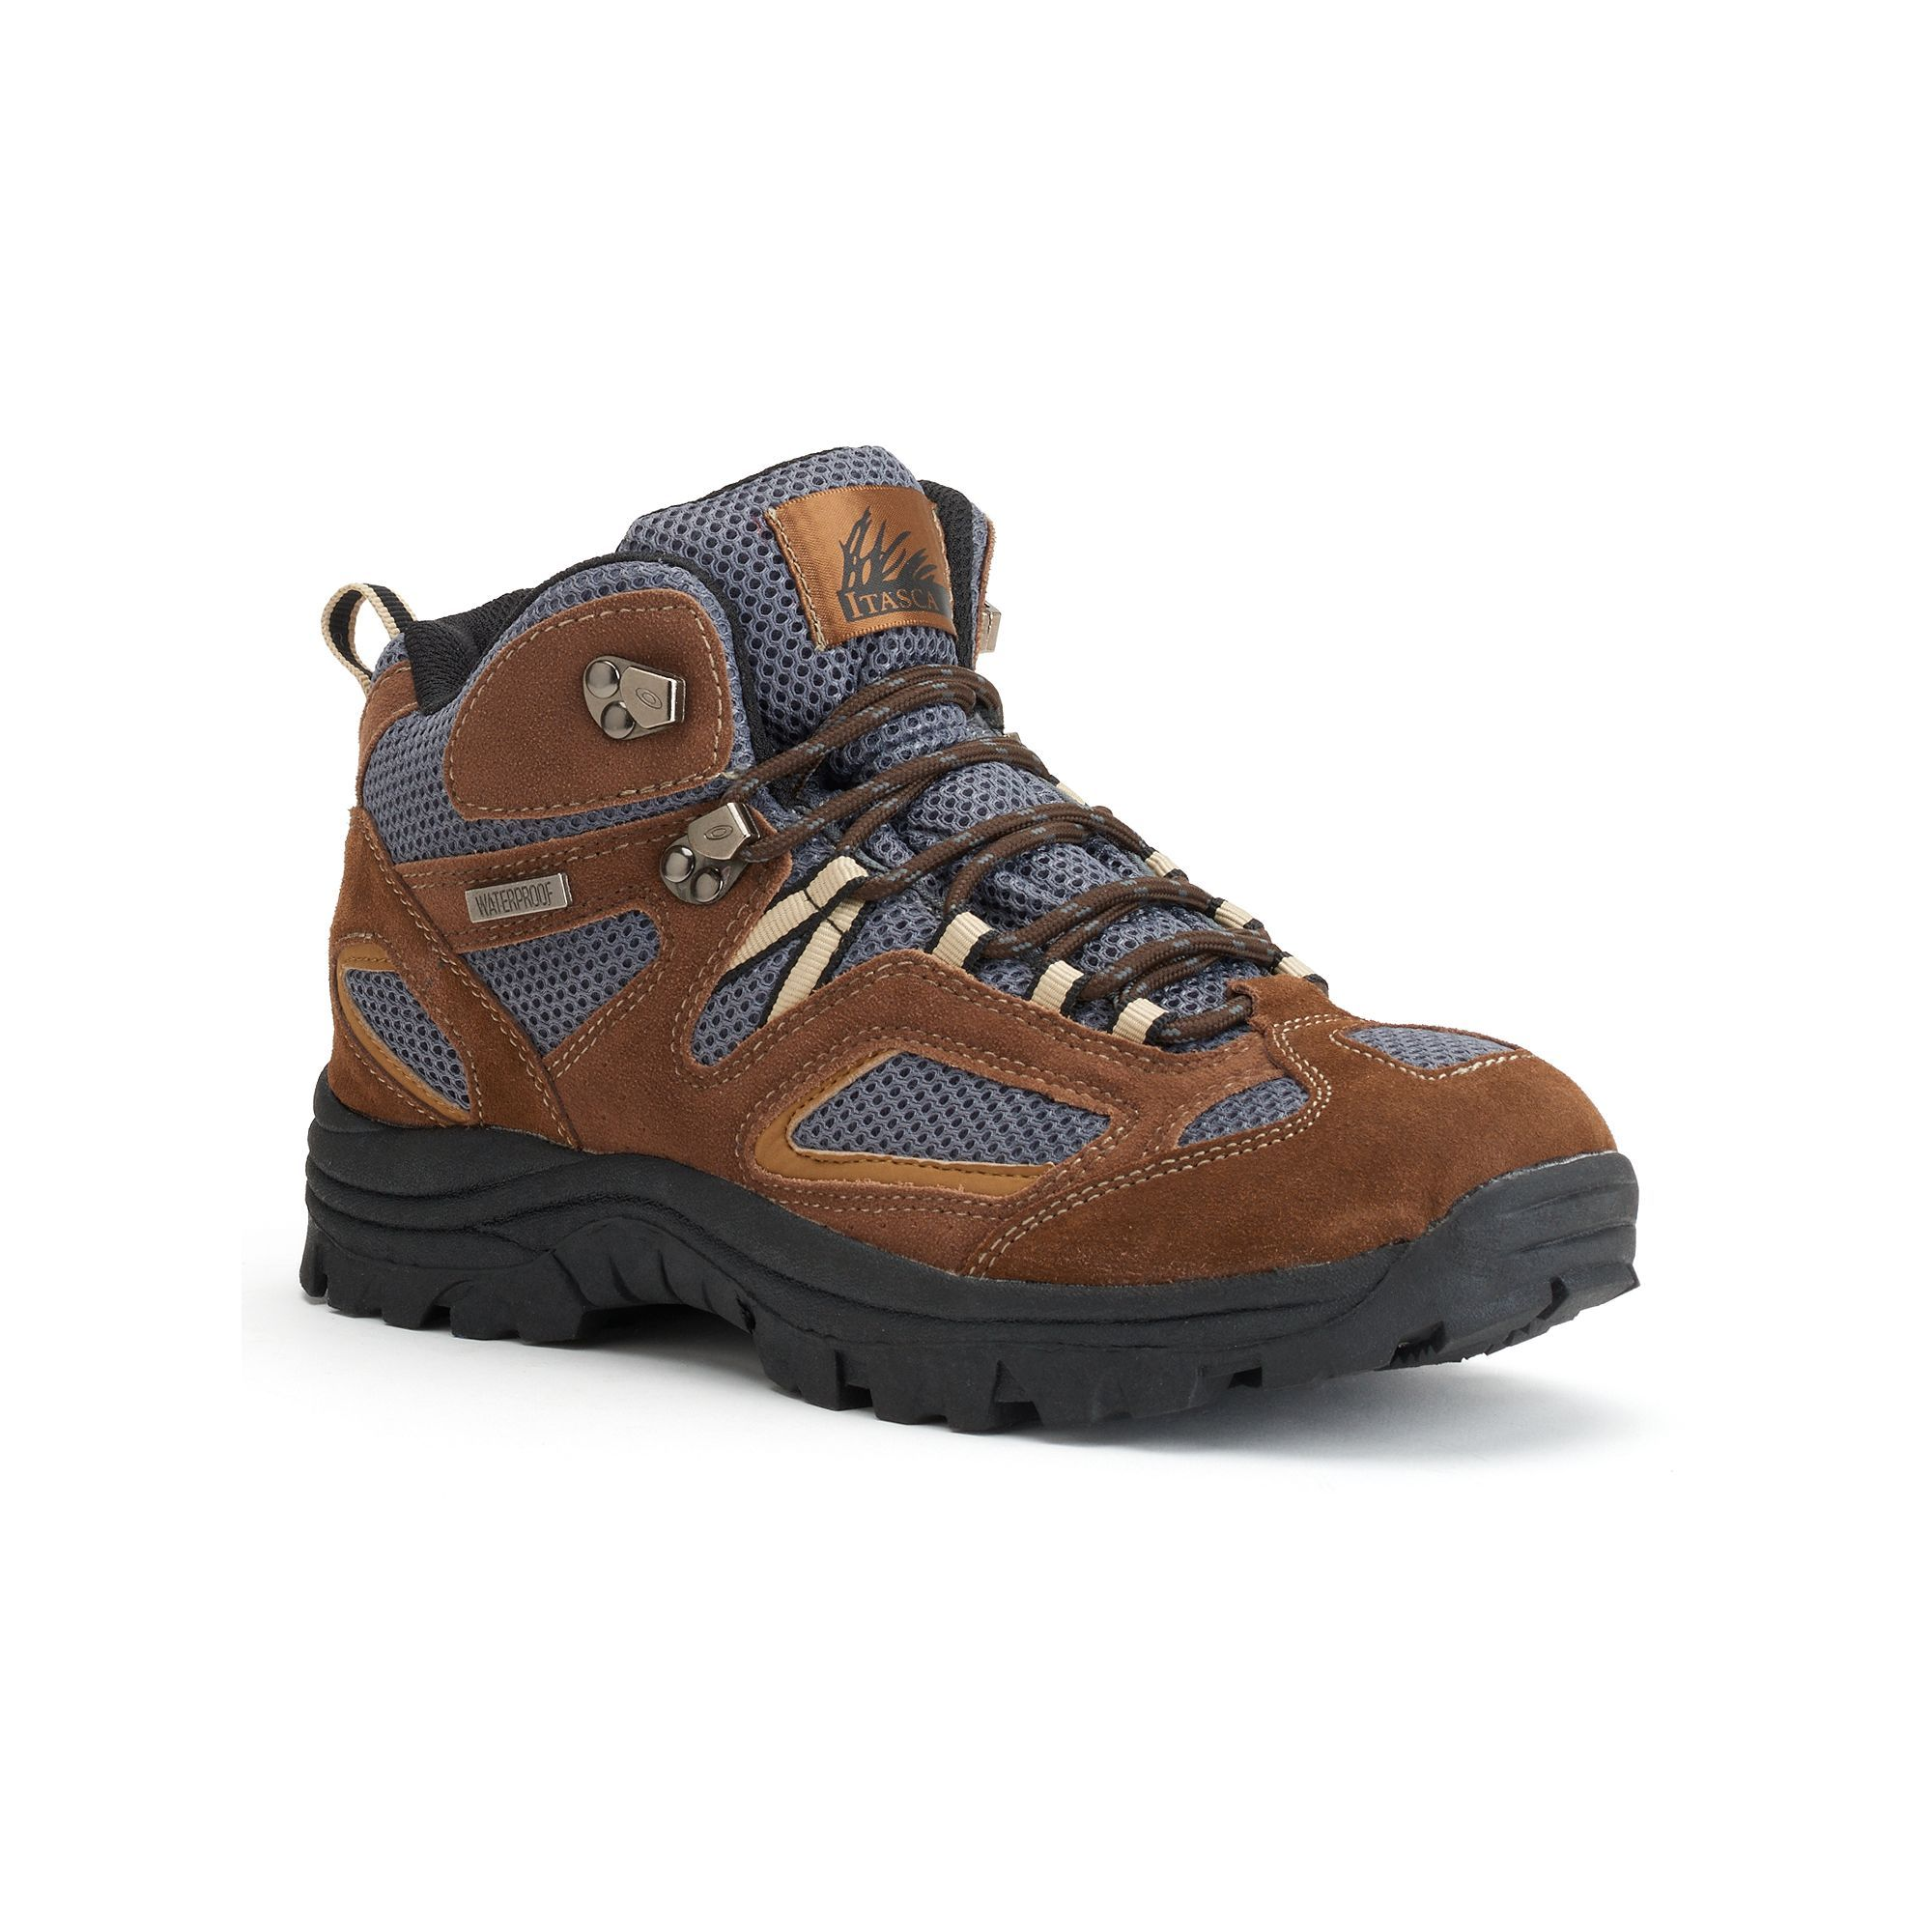 Itasca Ridgeway Mens Lightweight Hiking Boots Size 14 Wide Brown